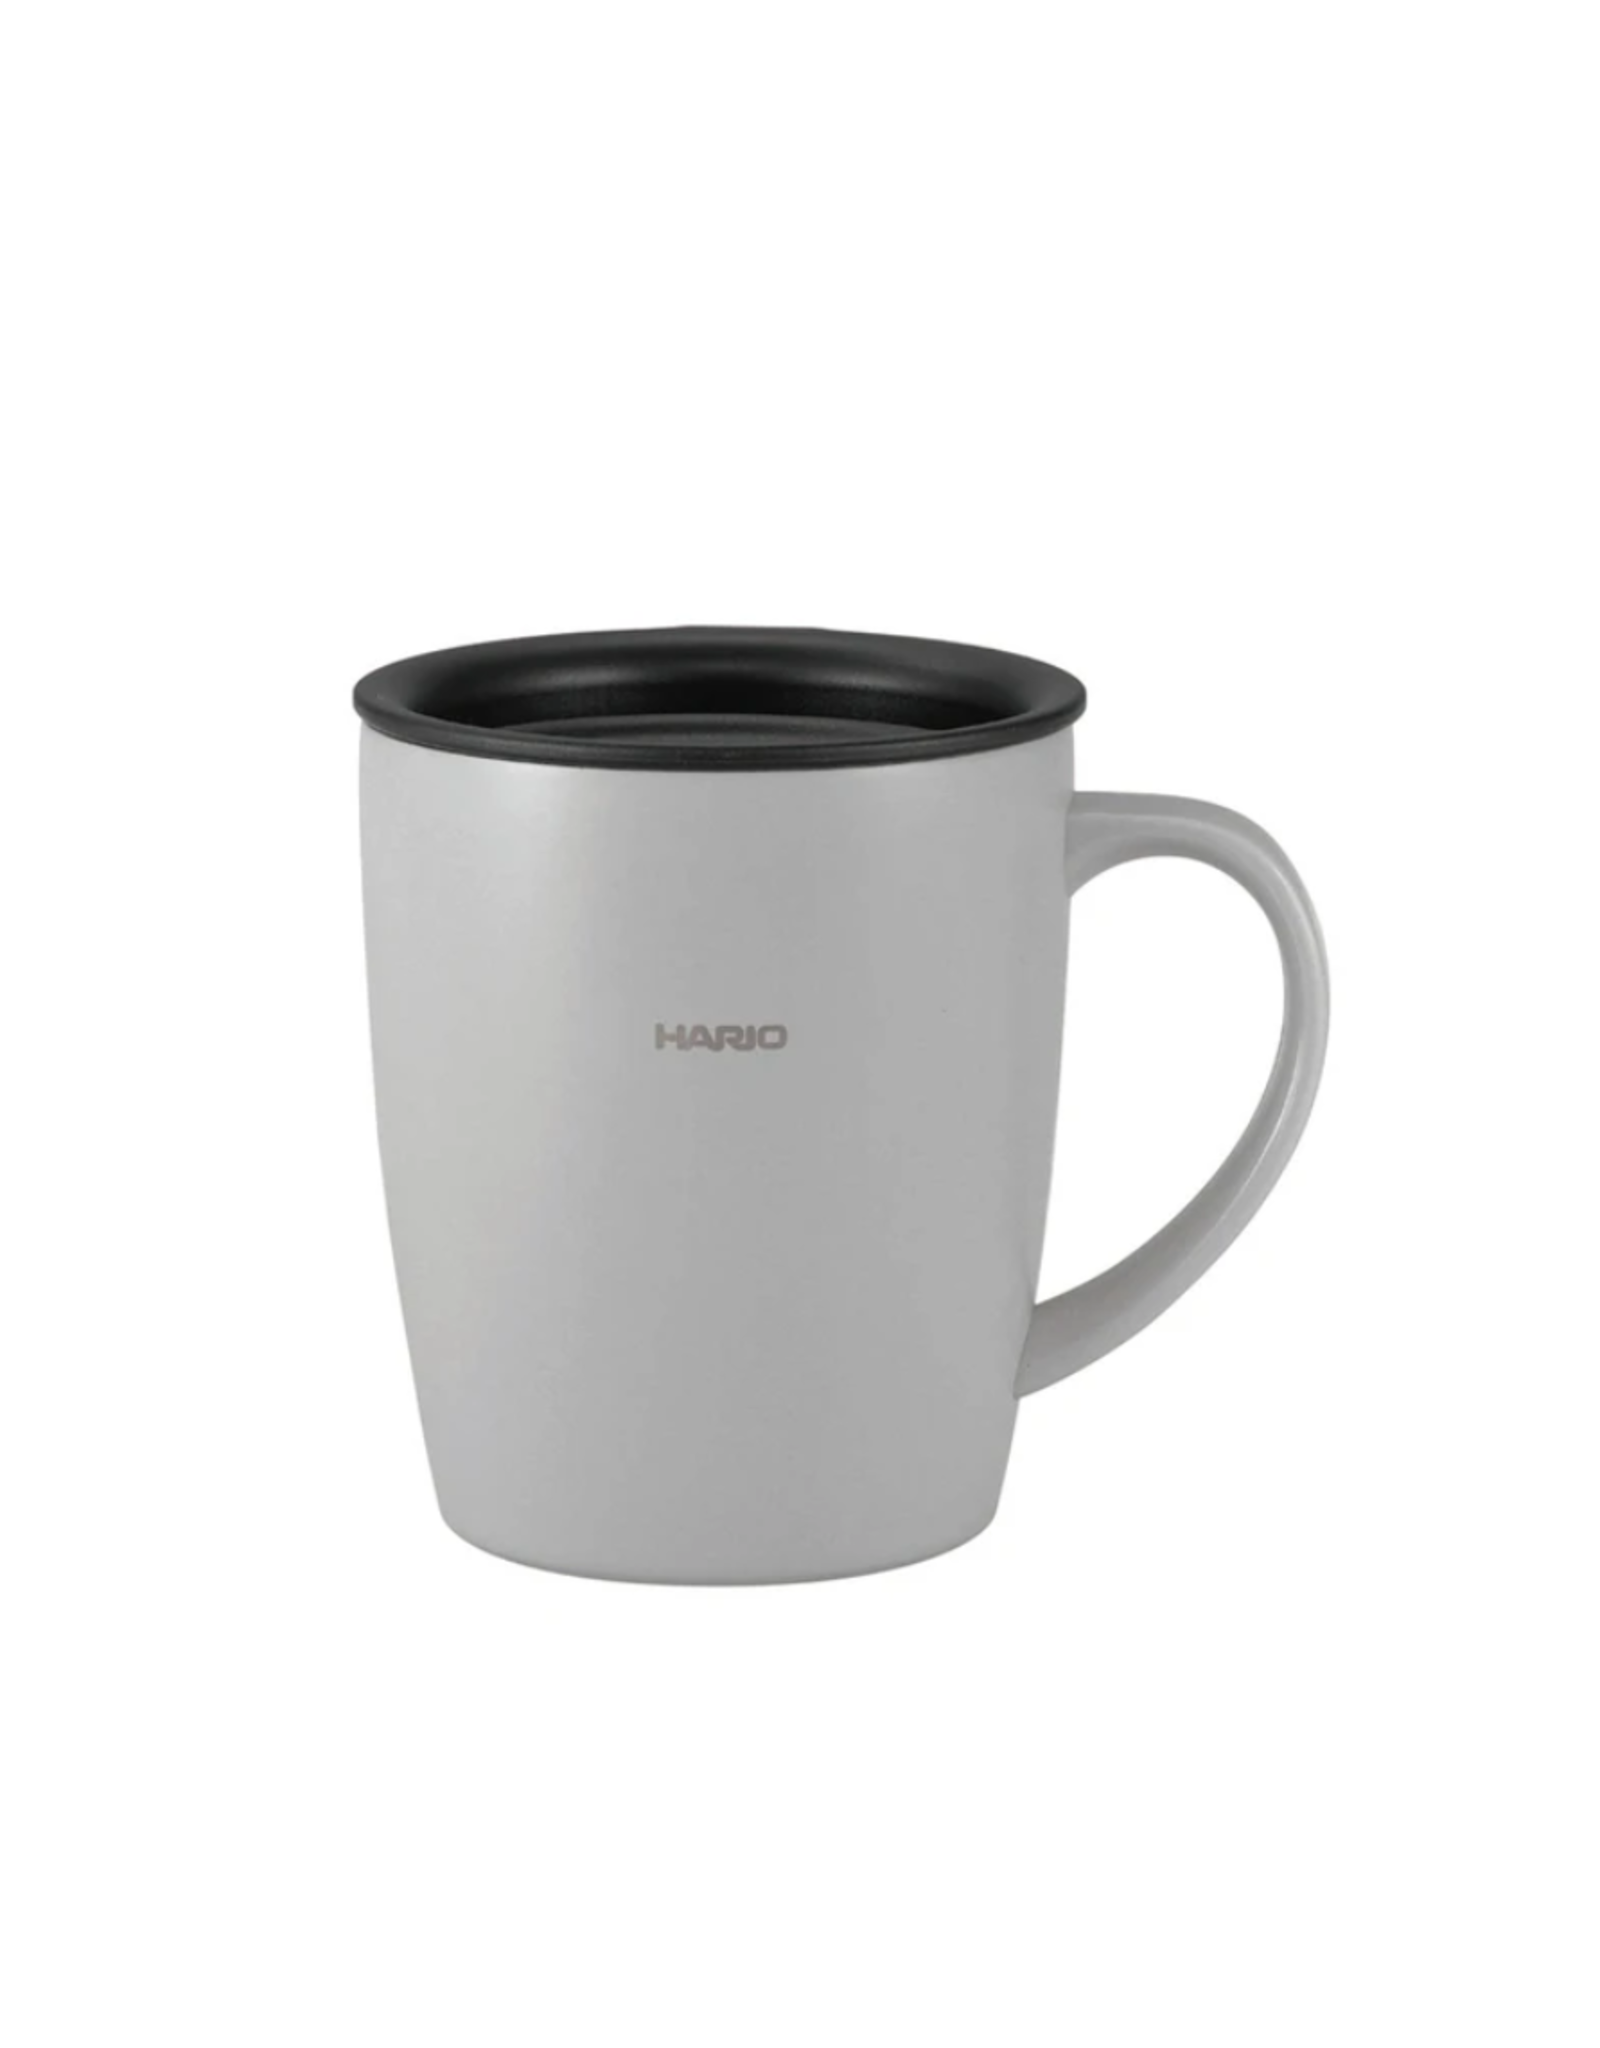 Hario Hario Insulated Mug 300ml - Grey